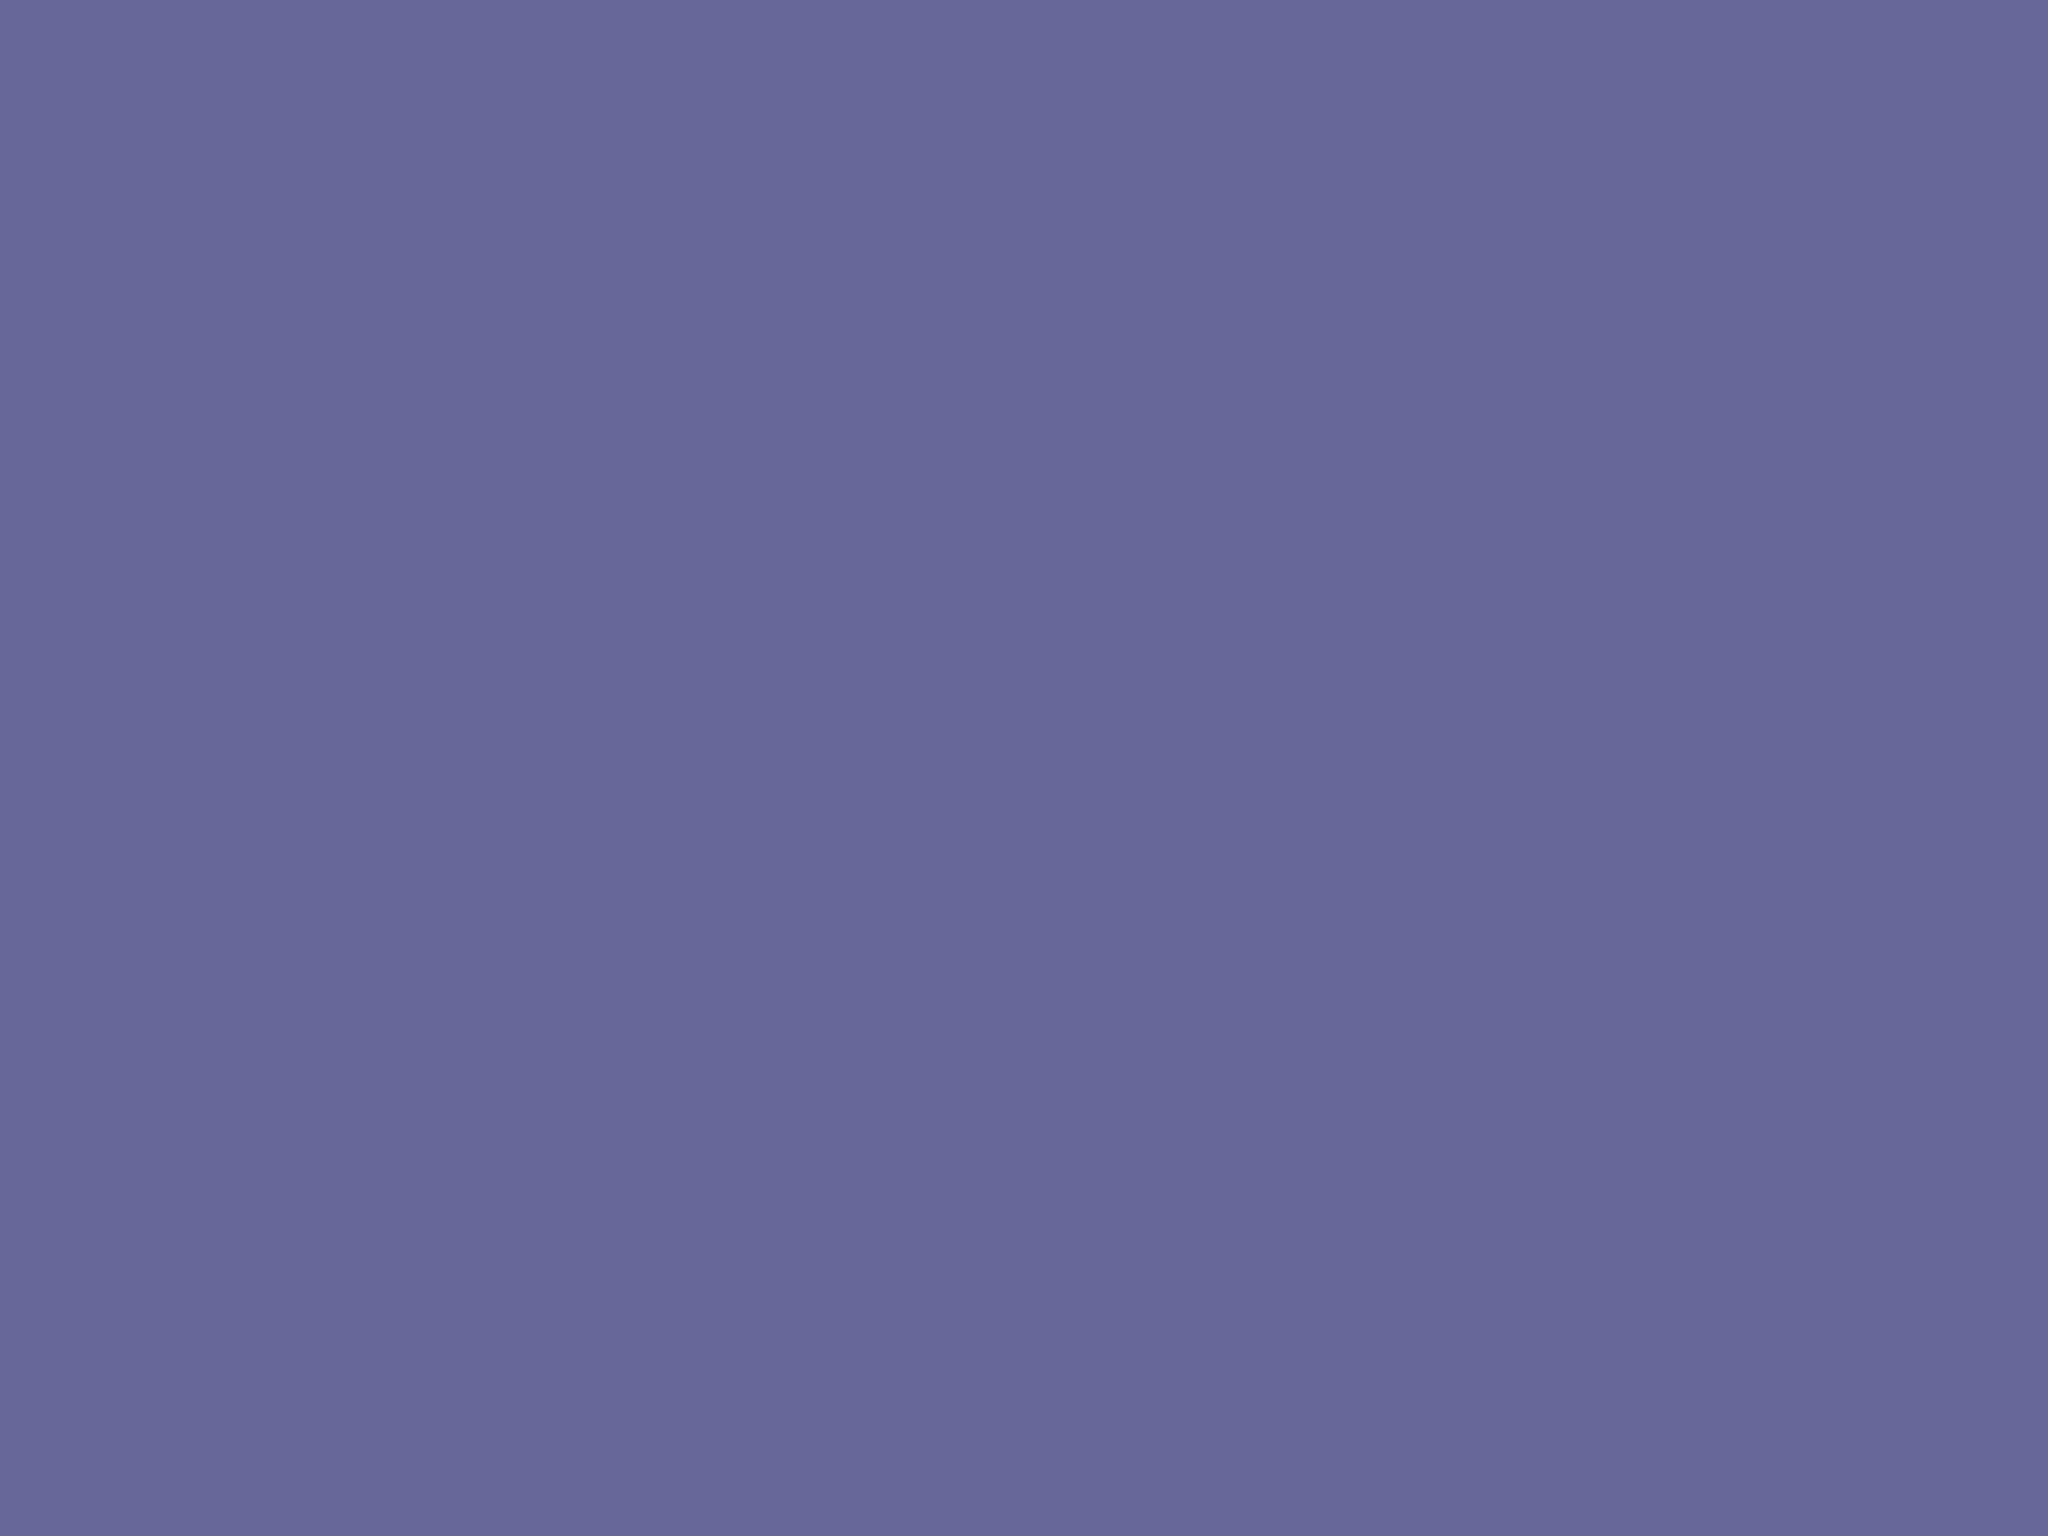 2048x1536 Dark Blue-gray Solid Color Background